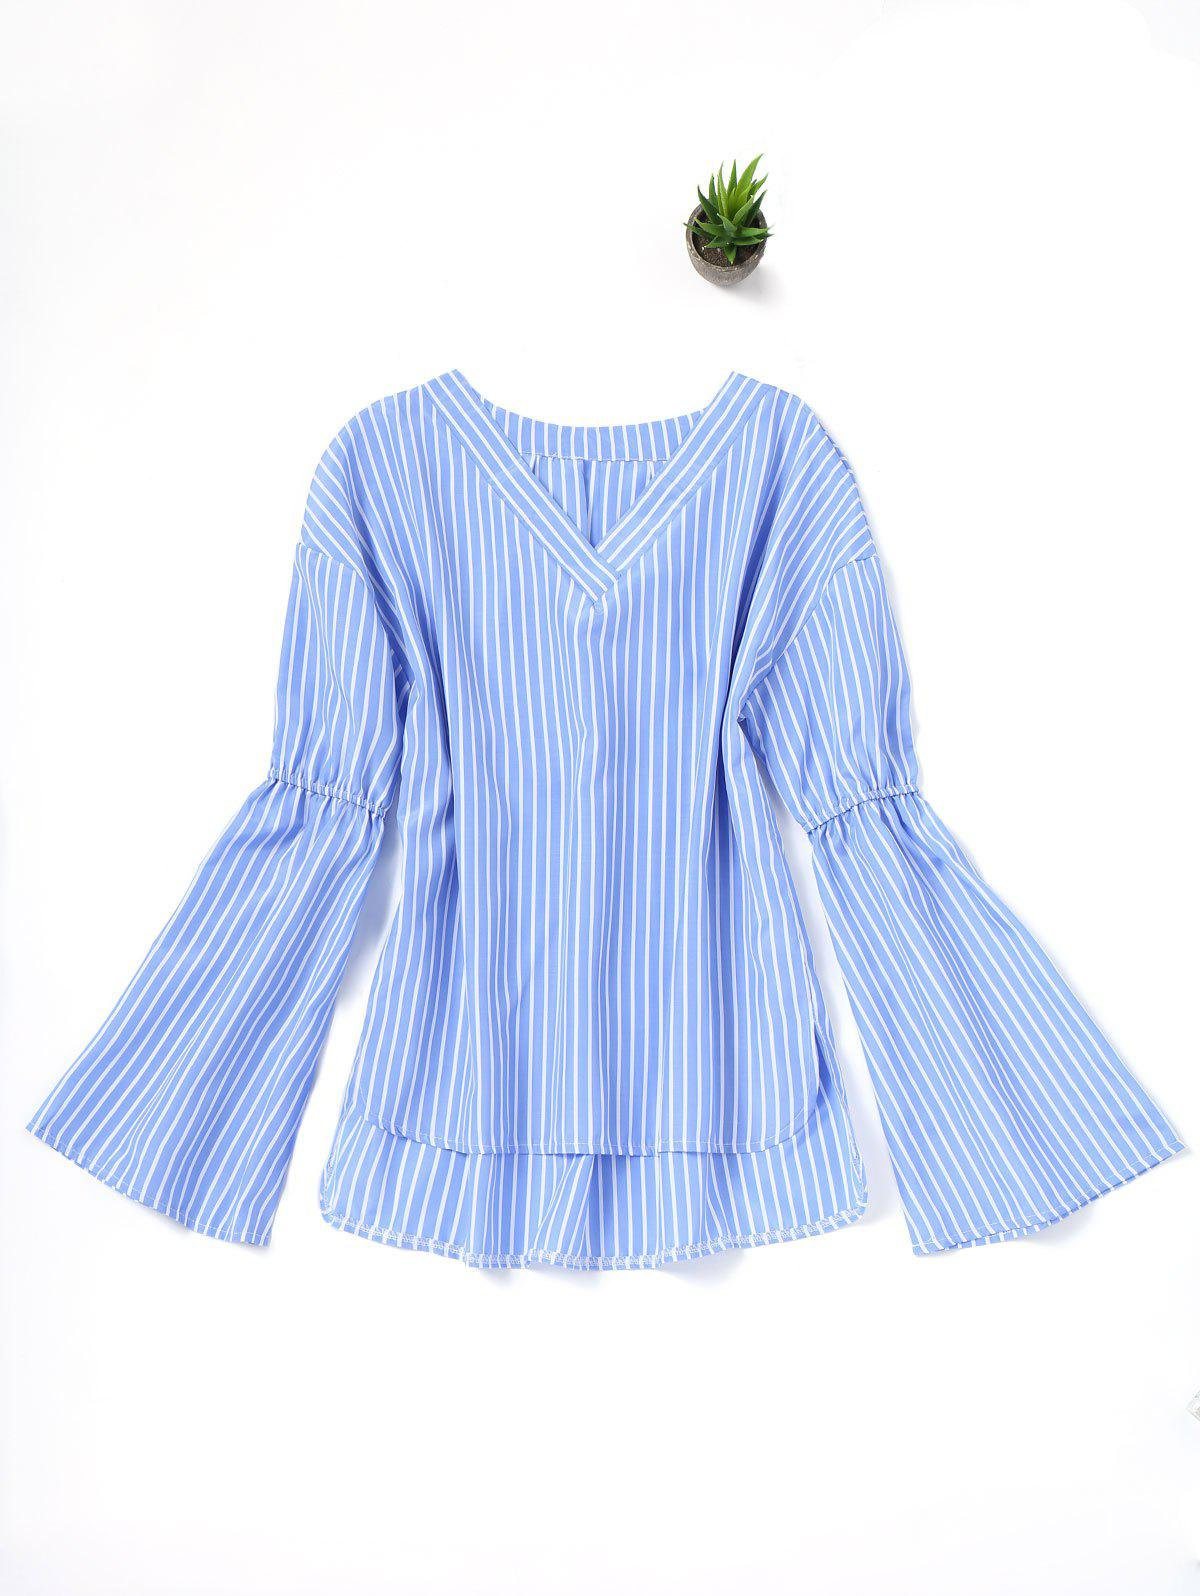 V-Ausschnitt Stripes High Low Bluse